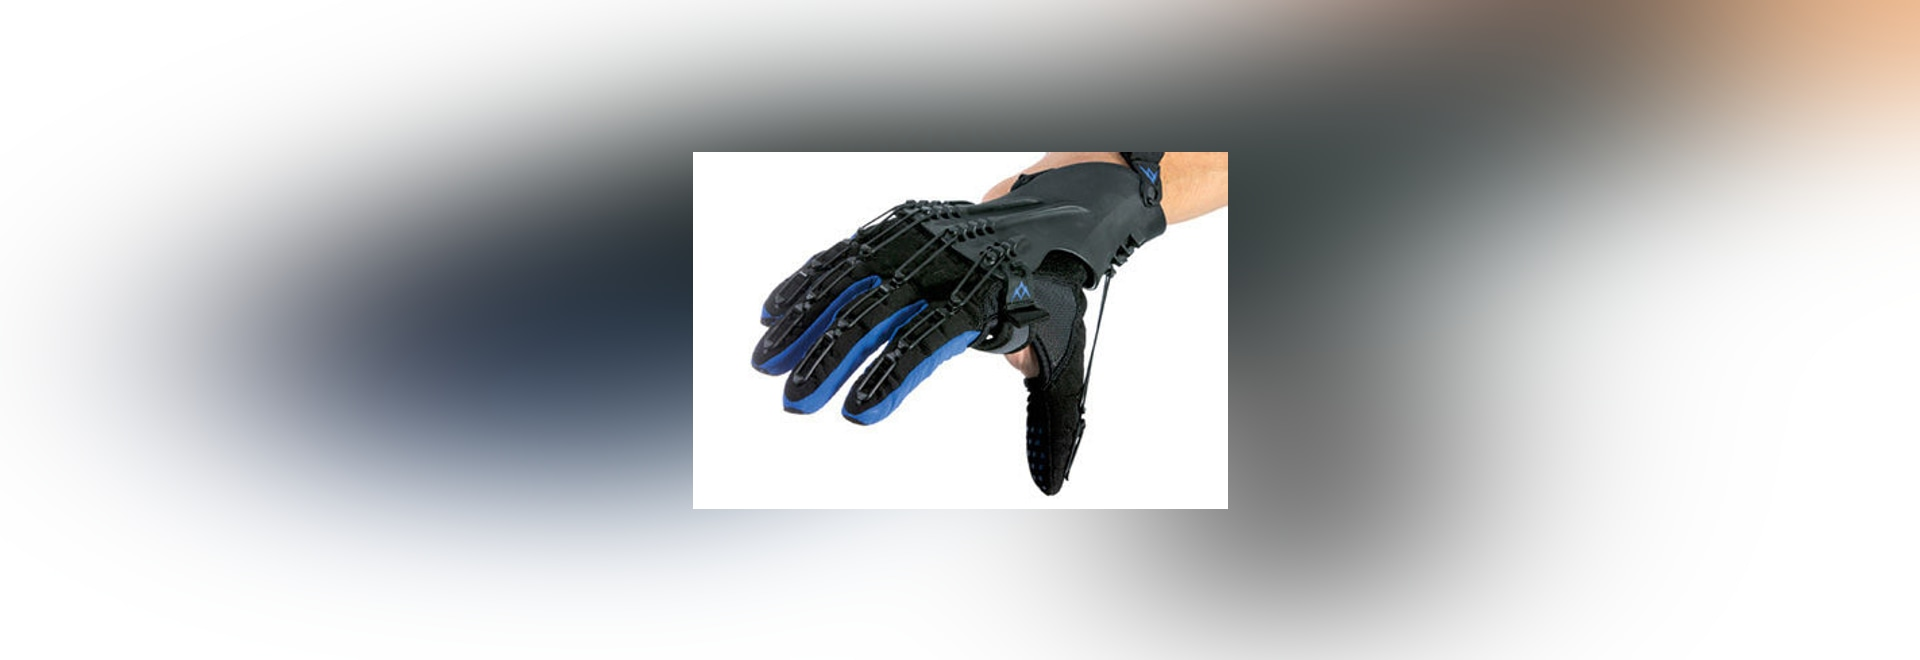 SaeboGlove by Saebo - Finger and Thumb extension orthosis